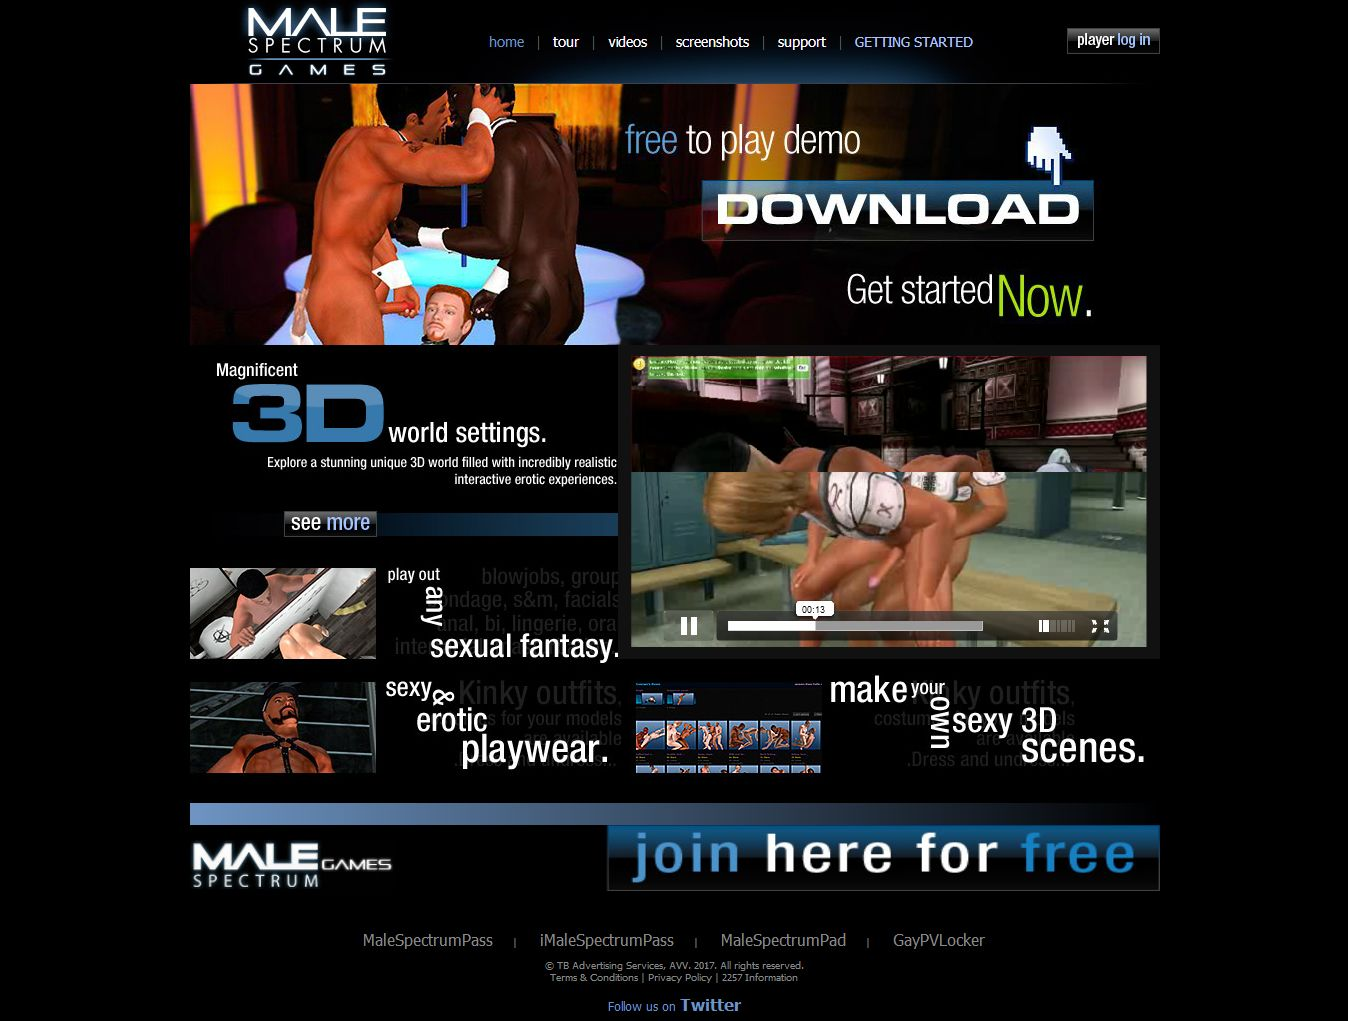 Male Spectrum Games